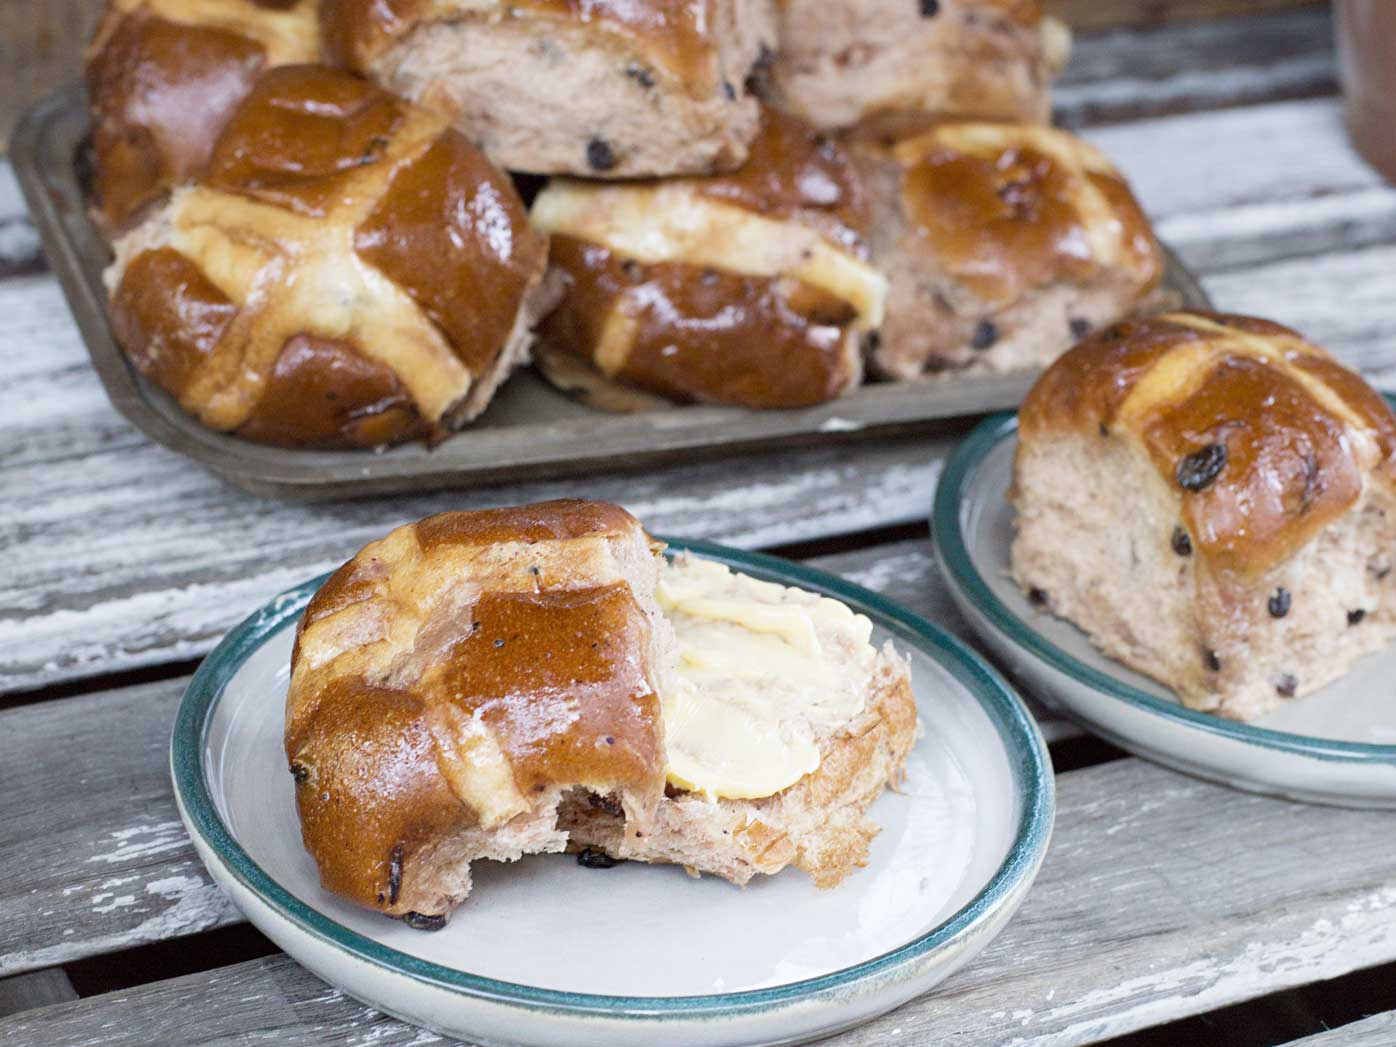 The Ground's hot cross buns